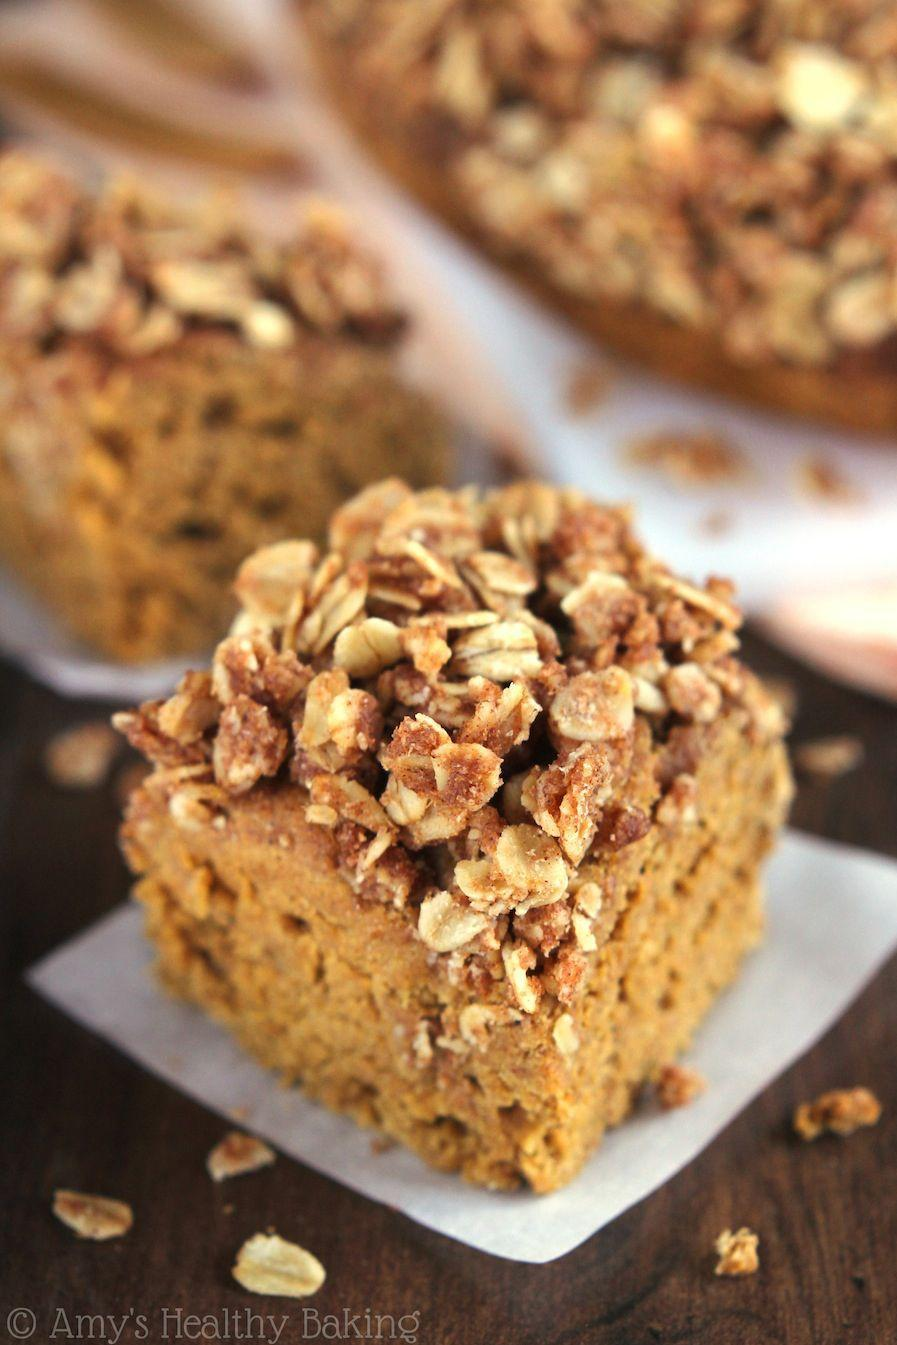 """<p>Sweet, rich, and covered in oats and cinnamon, this coffee cake is the best kind of comfort food.</p><p><strong>Get the recipe at <a href=""""http://amyshealthybaking.com/blog/2014/10/22/slow-cooker-pumpkin-streusel-coffee-cake/#.VE2b1b5U1FI"""" rel=""""nofollow noopener"""" target=""""_blank"""" data-ylk=""""slk:Amy's Healthy Baking"""" class=""""link rapid-noclick-resp"""">Amy's Healthy Baking</a>.</strong></p>"""